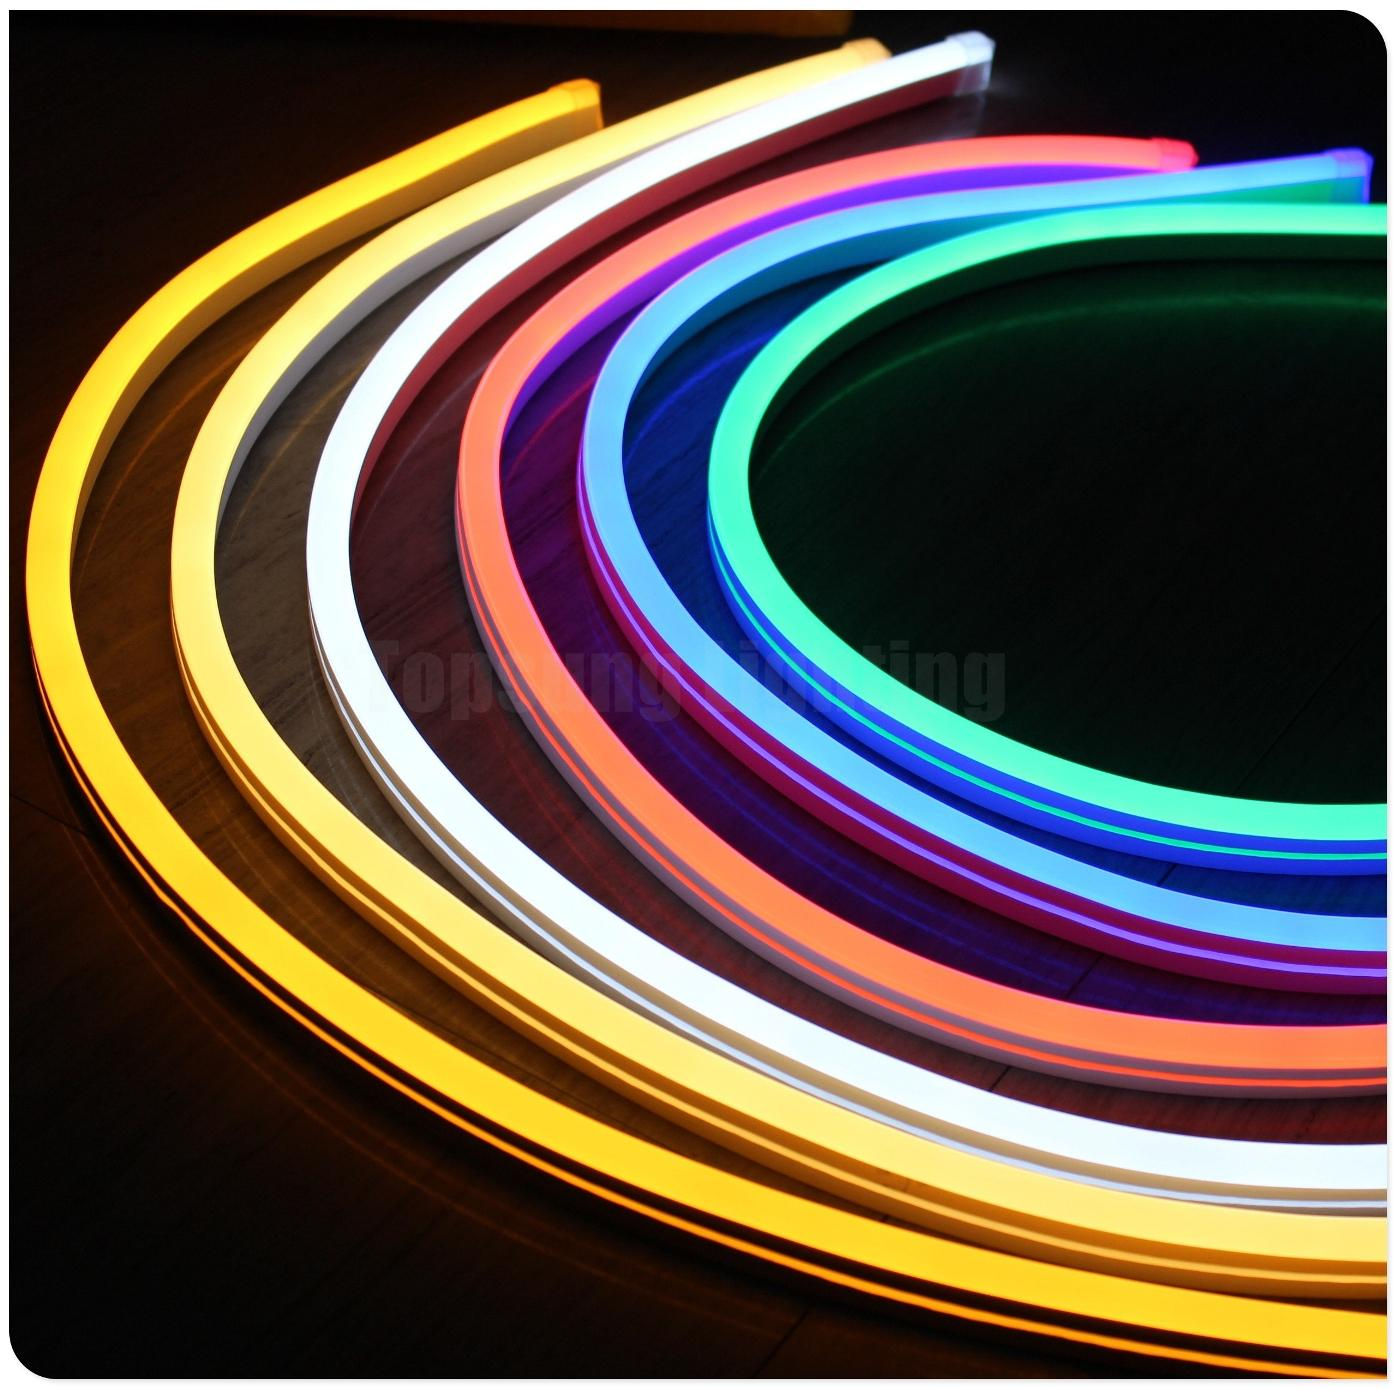 save off 27f37 7ef5d 2019 50m Spool 12v Ultra Thin Led Neon Light Flex Rope Lights Slim Smd  Neonflex 11x18mm Multi Color Soft Tube For Decoration From Karonxie,  $477.39 | ...